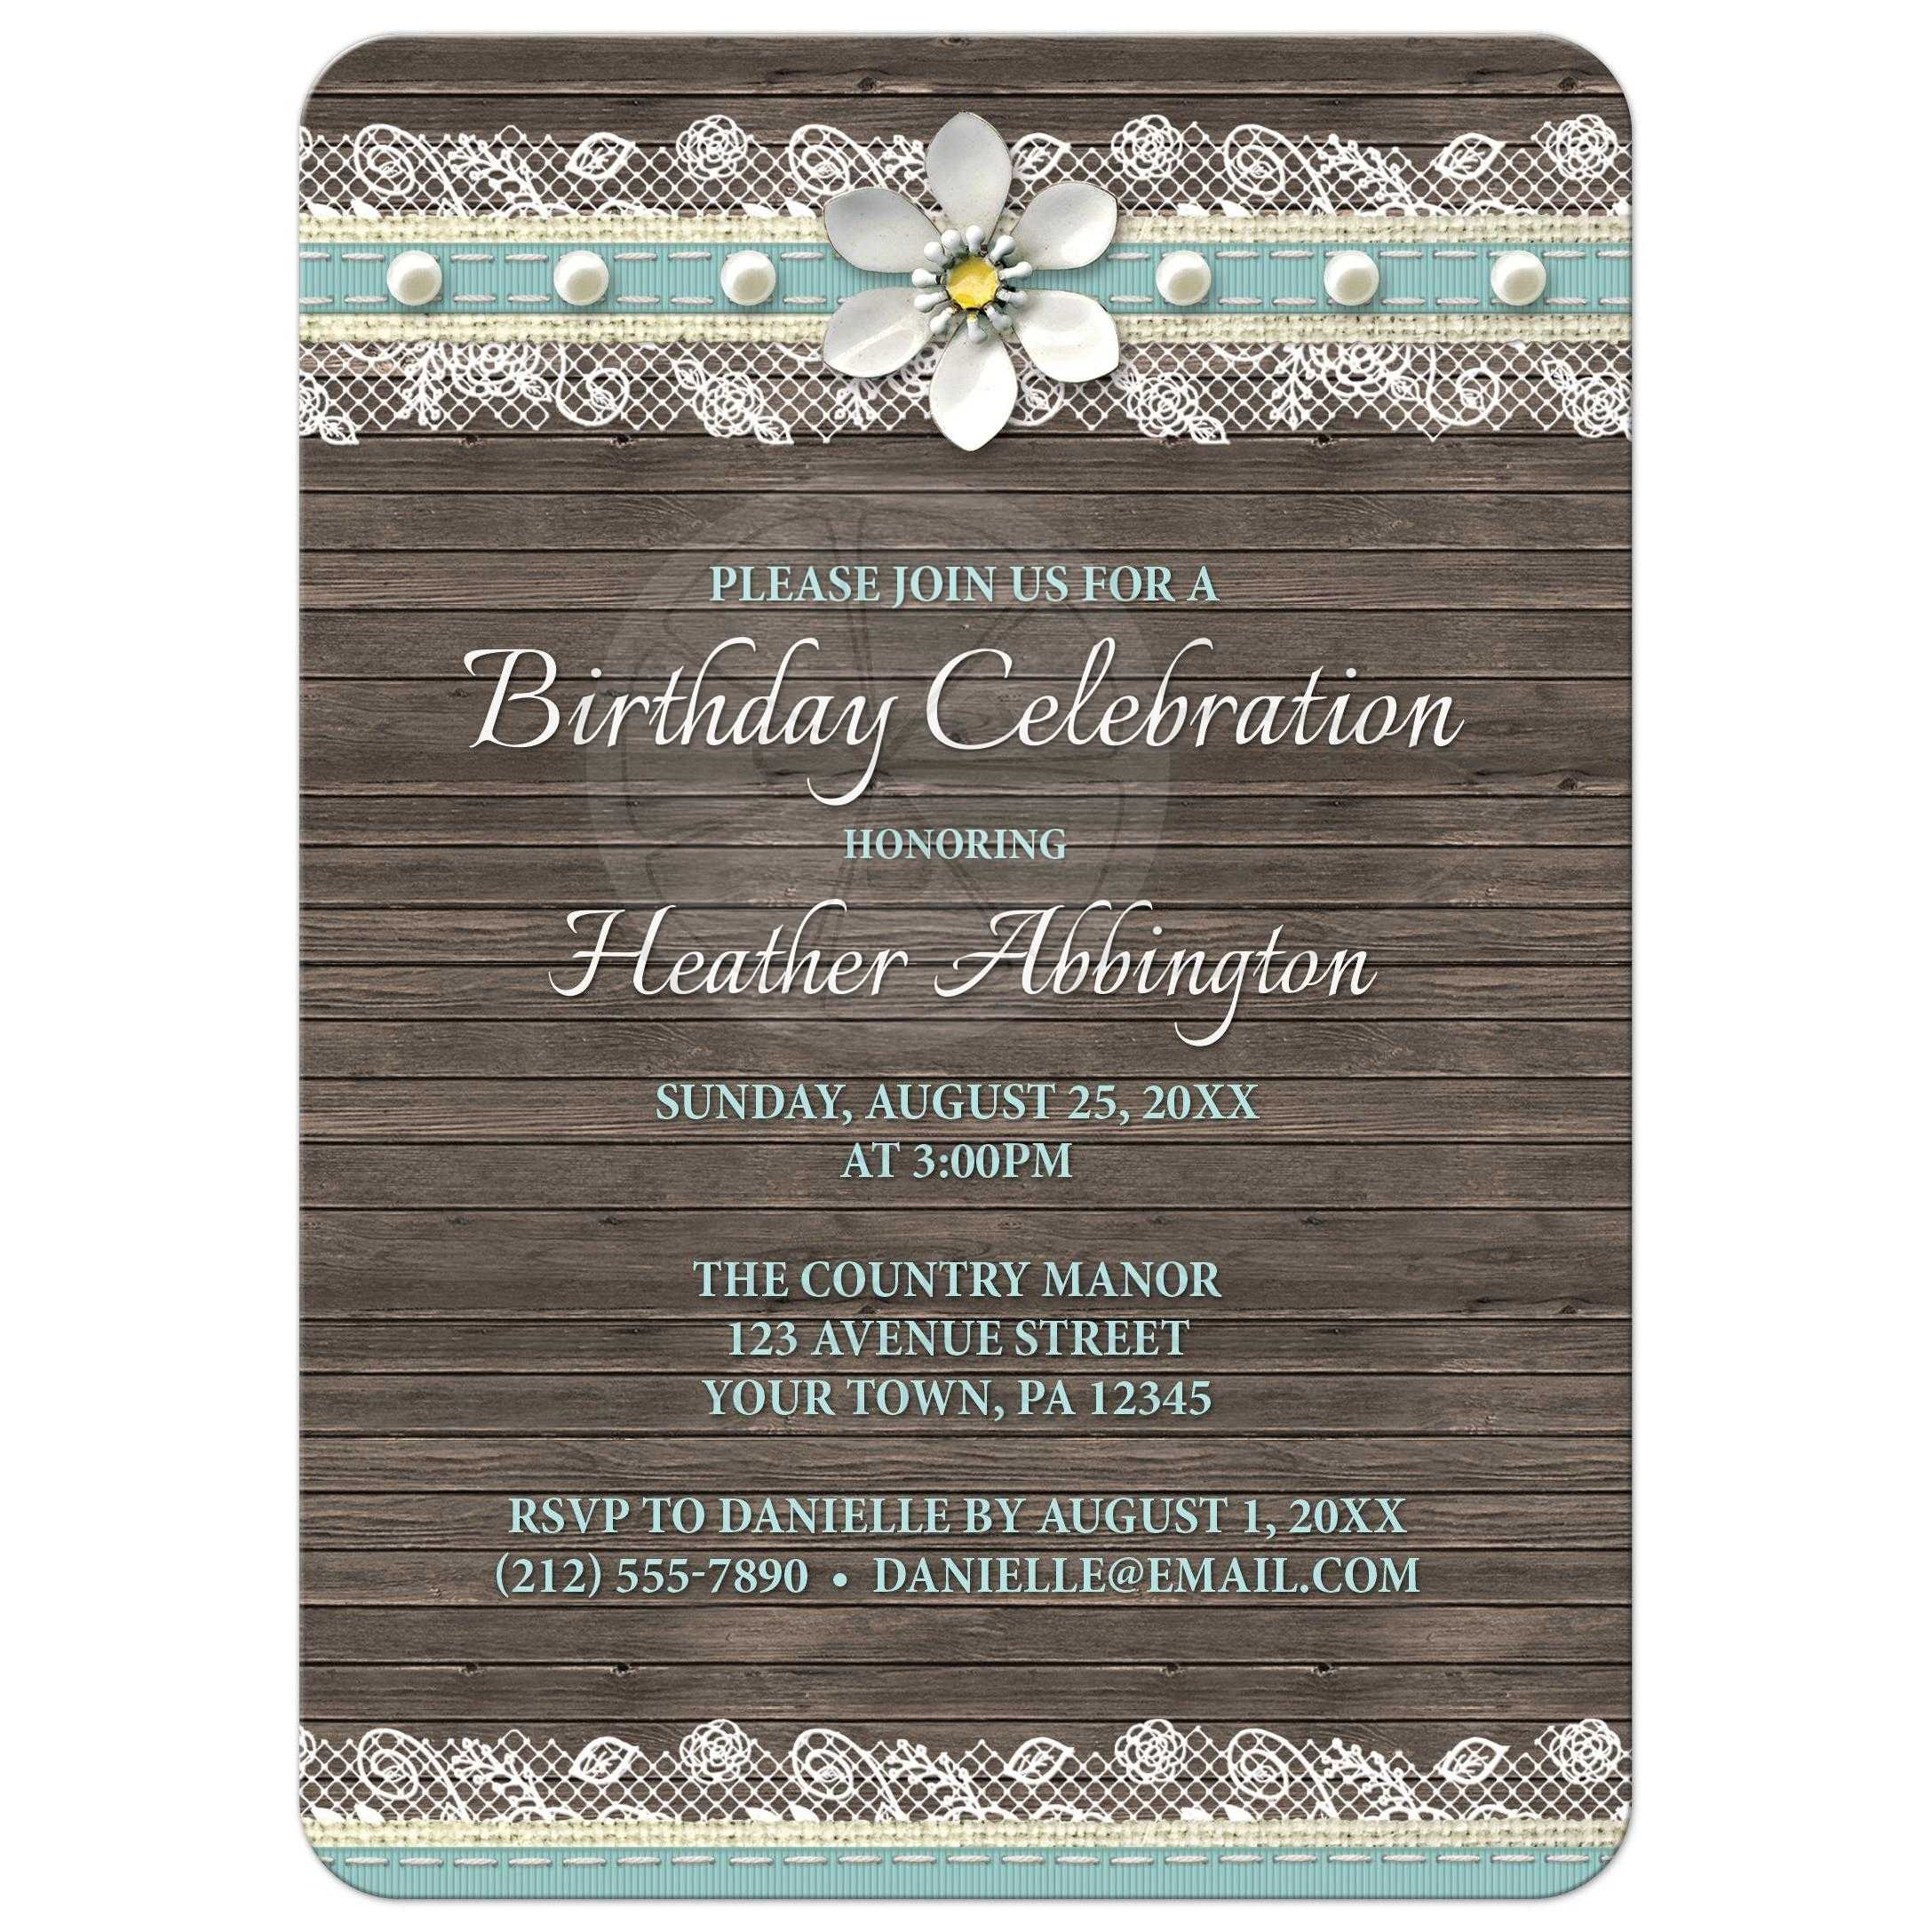 Birthday invitations wood and lace turquoise filmwisefo